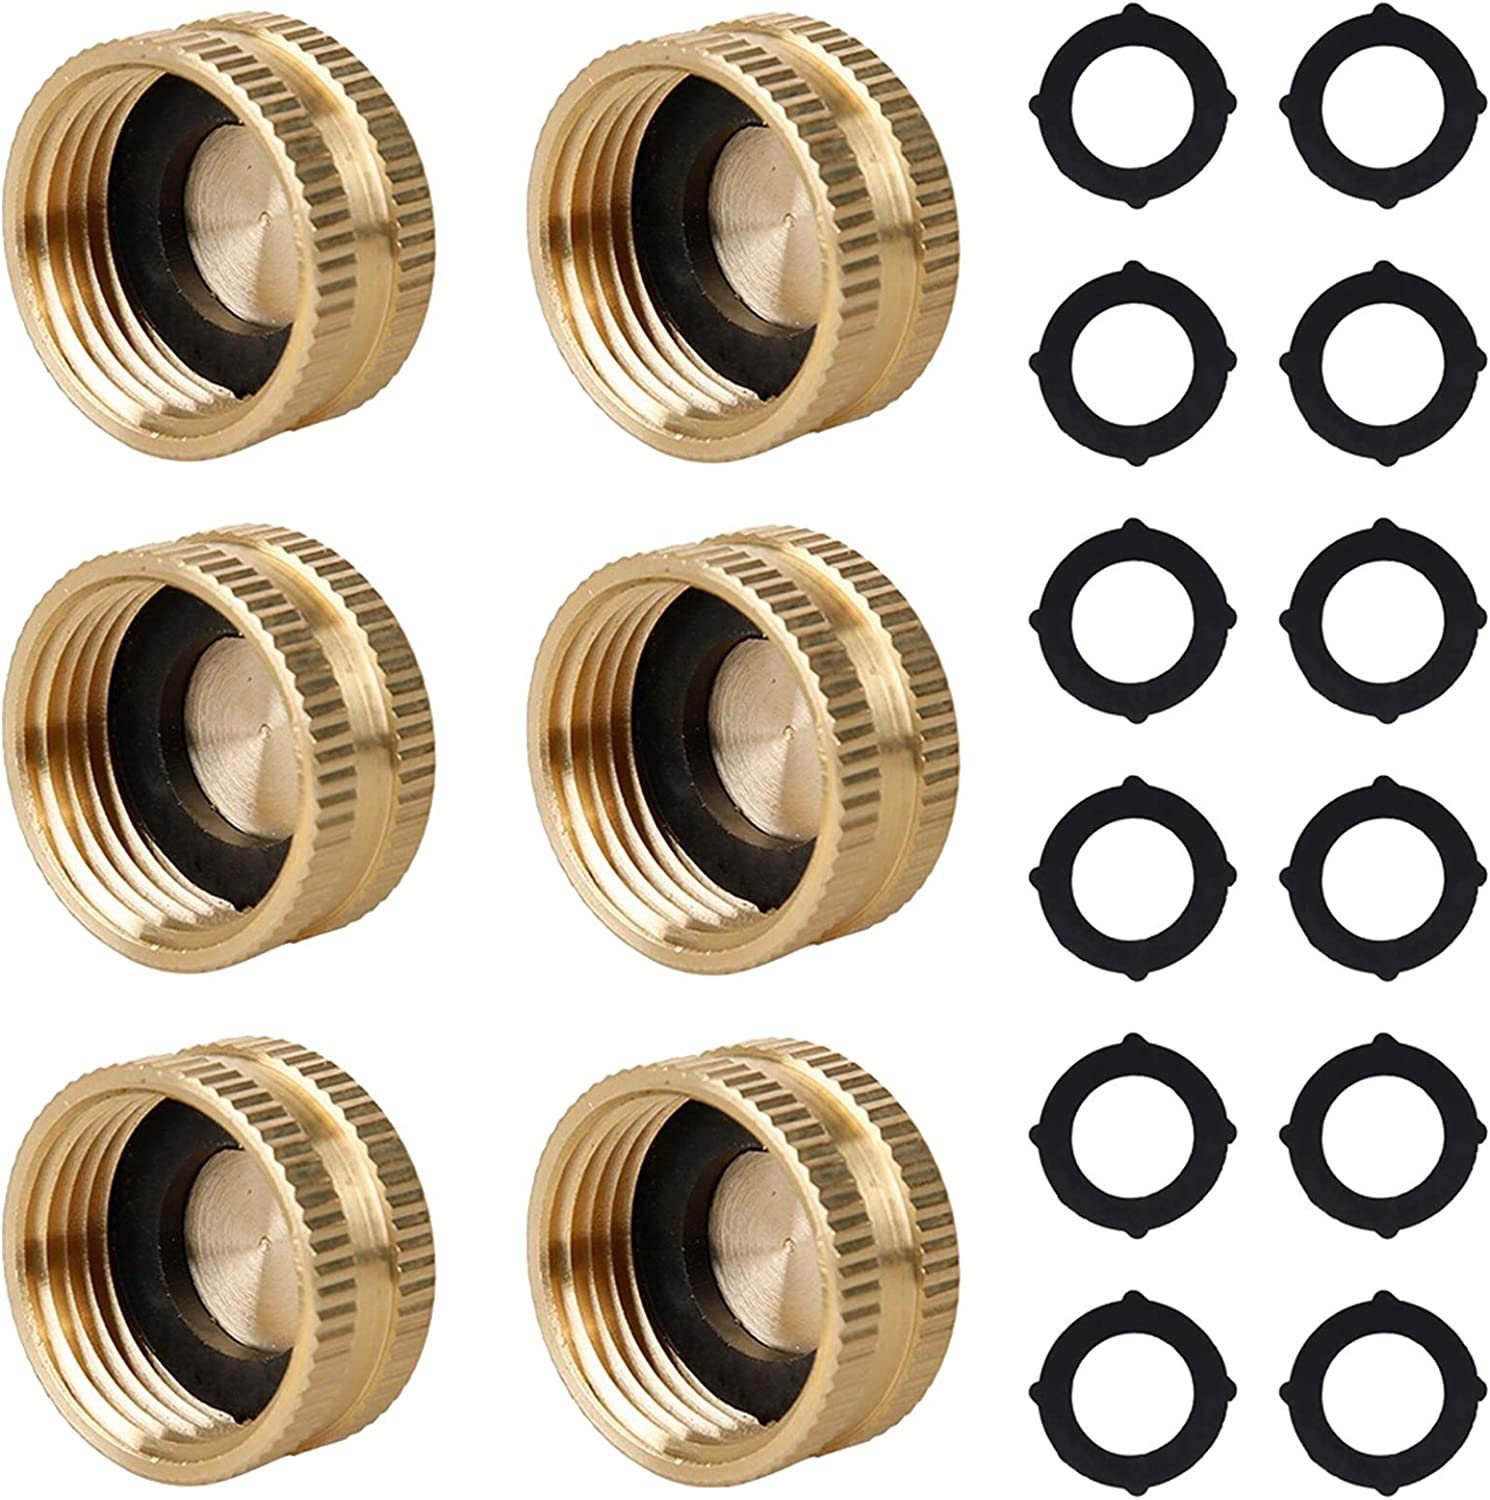 Raincovo Garden Hose Cap with Female End, Outdoor Faucet Cap, Brass, 3/4 Inch, 6 Pack with Extra 12 Washers